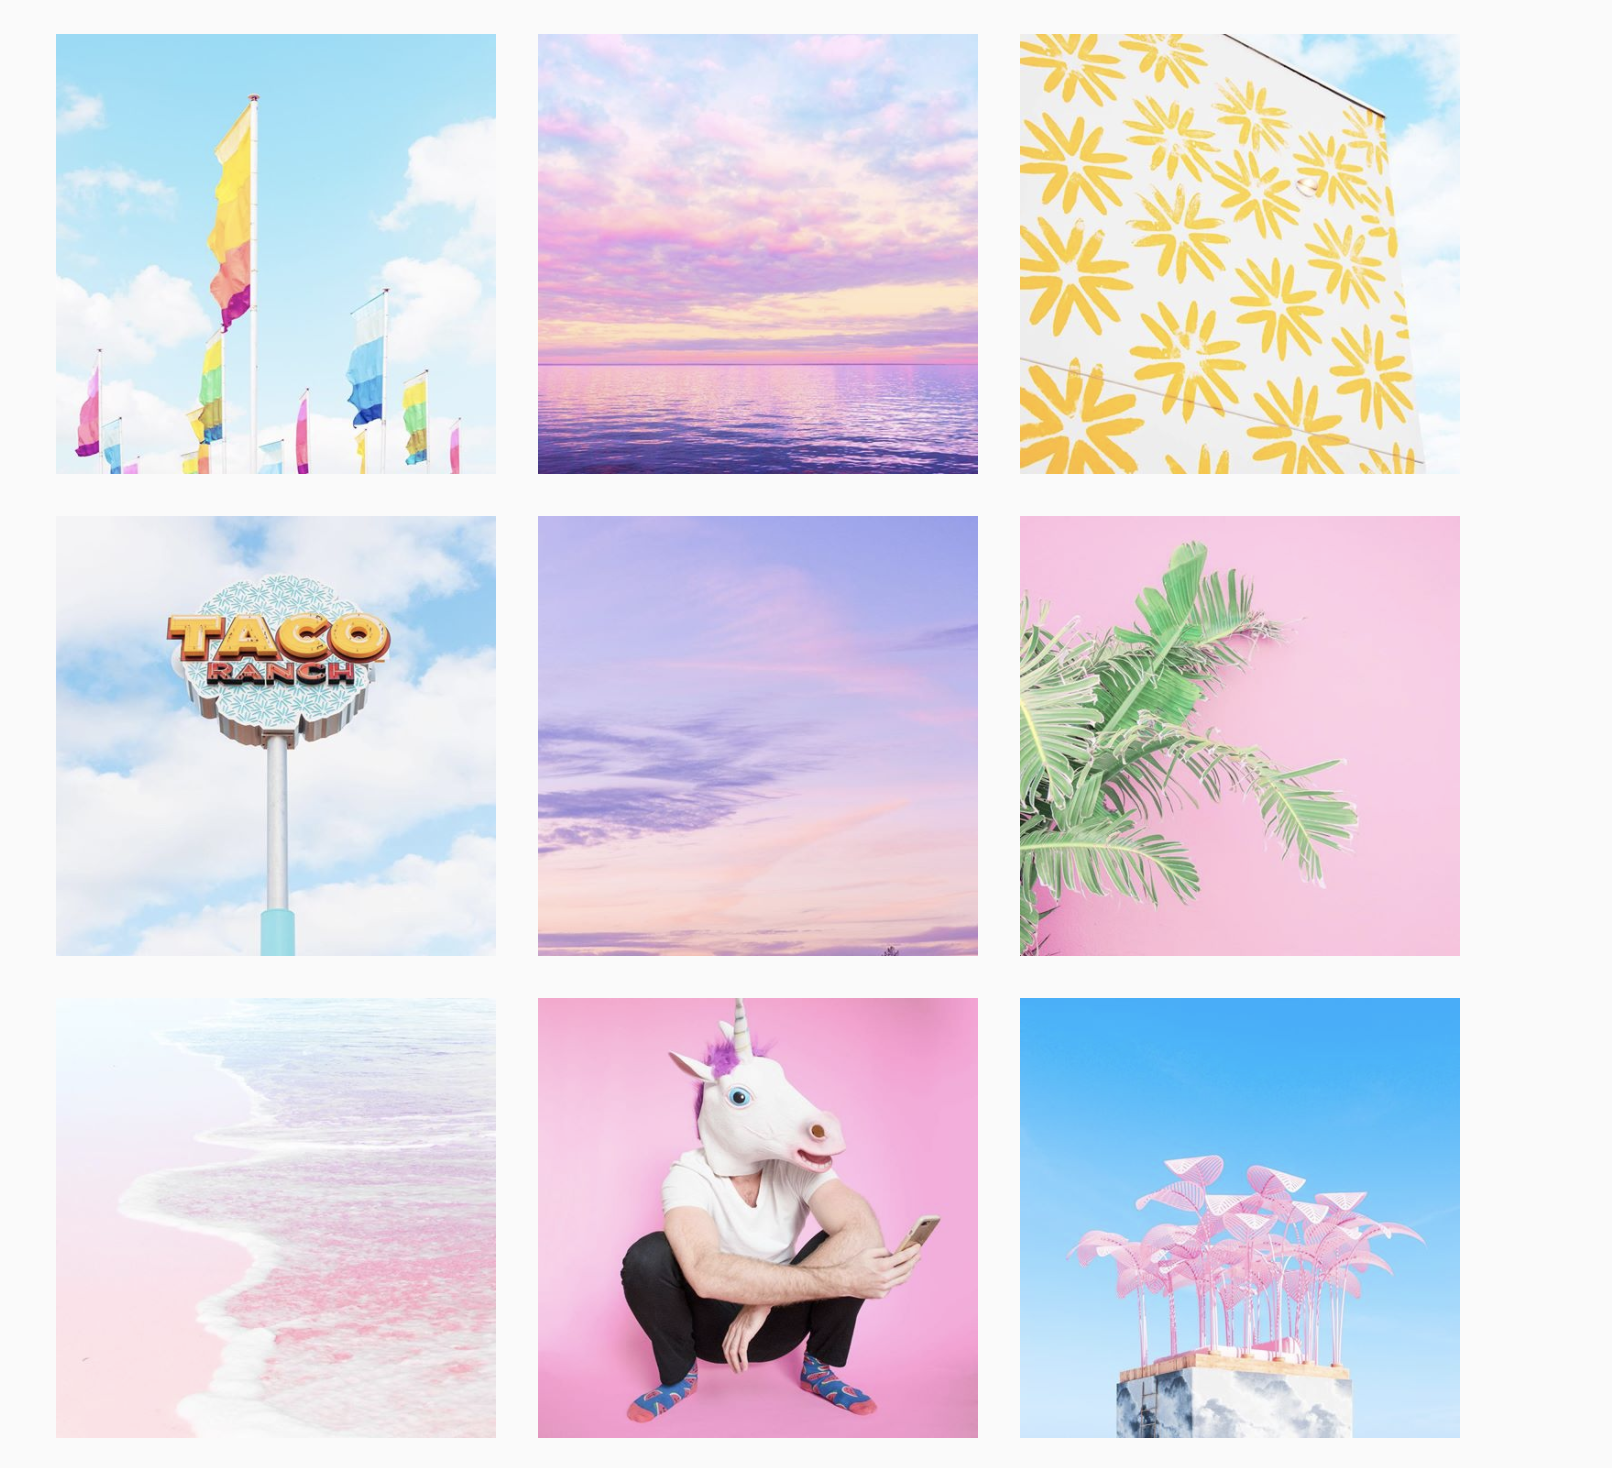 9 Brilliant Instagram Feed Ideas That Can Make Your Profile Standout